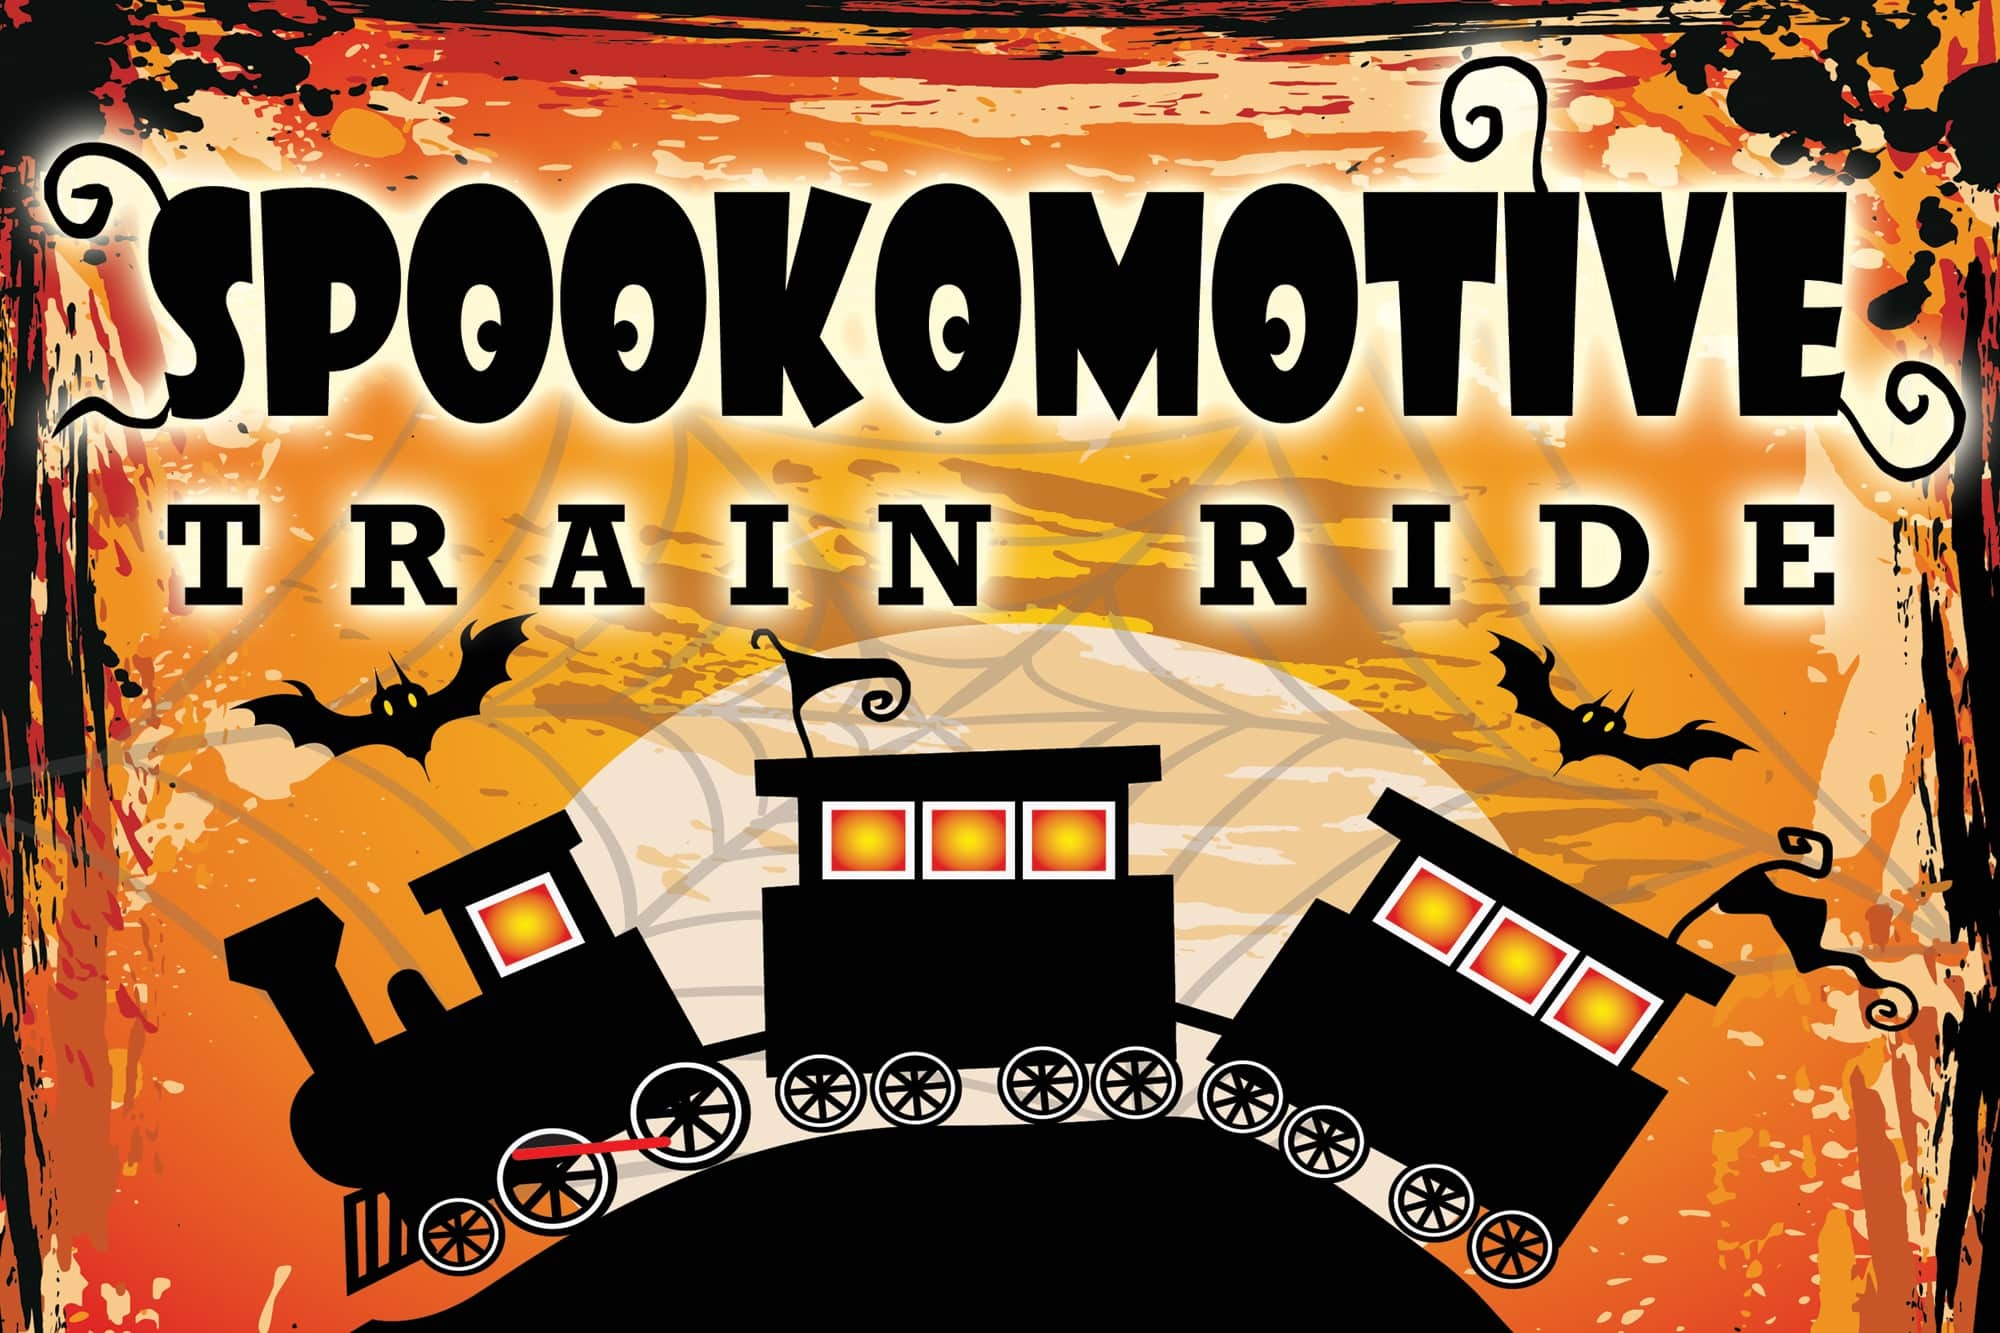 Spookomotive 2000 X 1333